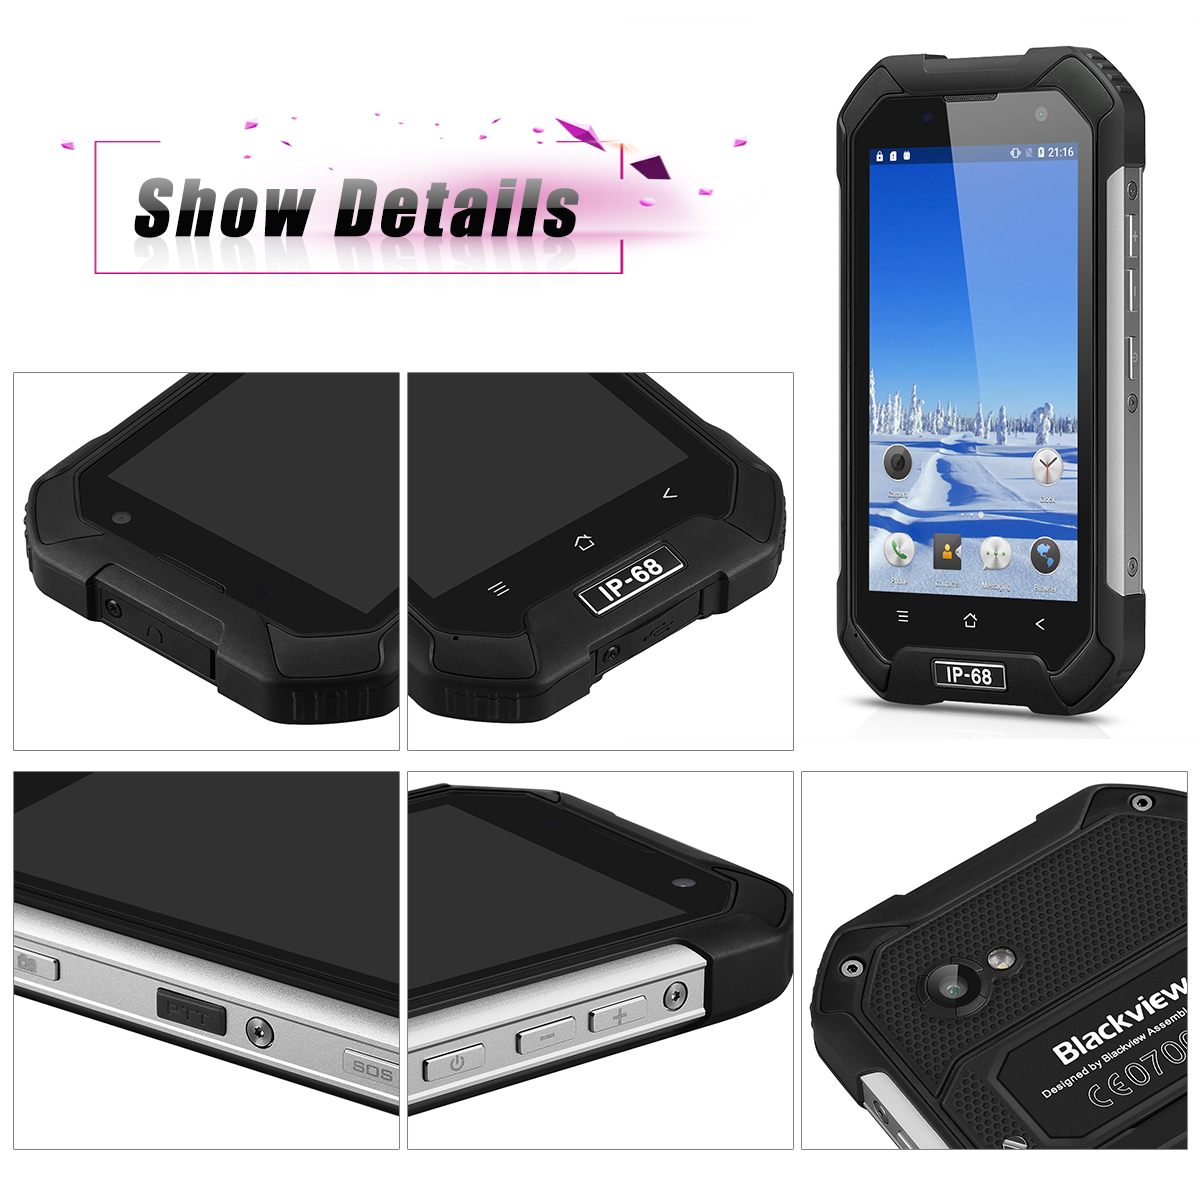 """Blackview BV6000S 4G Android 6.0 MT6735 Quad-core 1.3 GHz 4.7"""" HD 720*1280 Pixels 2GB ROM 16GB RAM 2MP Front camera 8MP Back camera NFC 4200mAh 5 points Double Micro SIM Card GSM/WCDMA/FDD-LTE WIFI GP"""